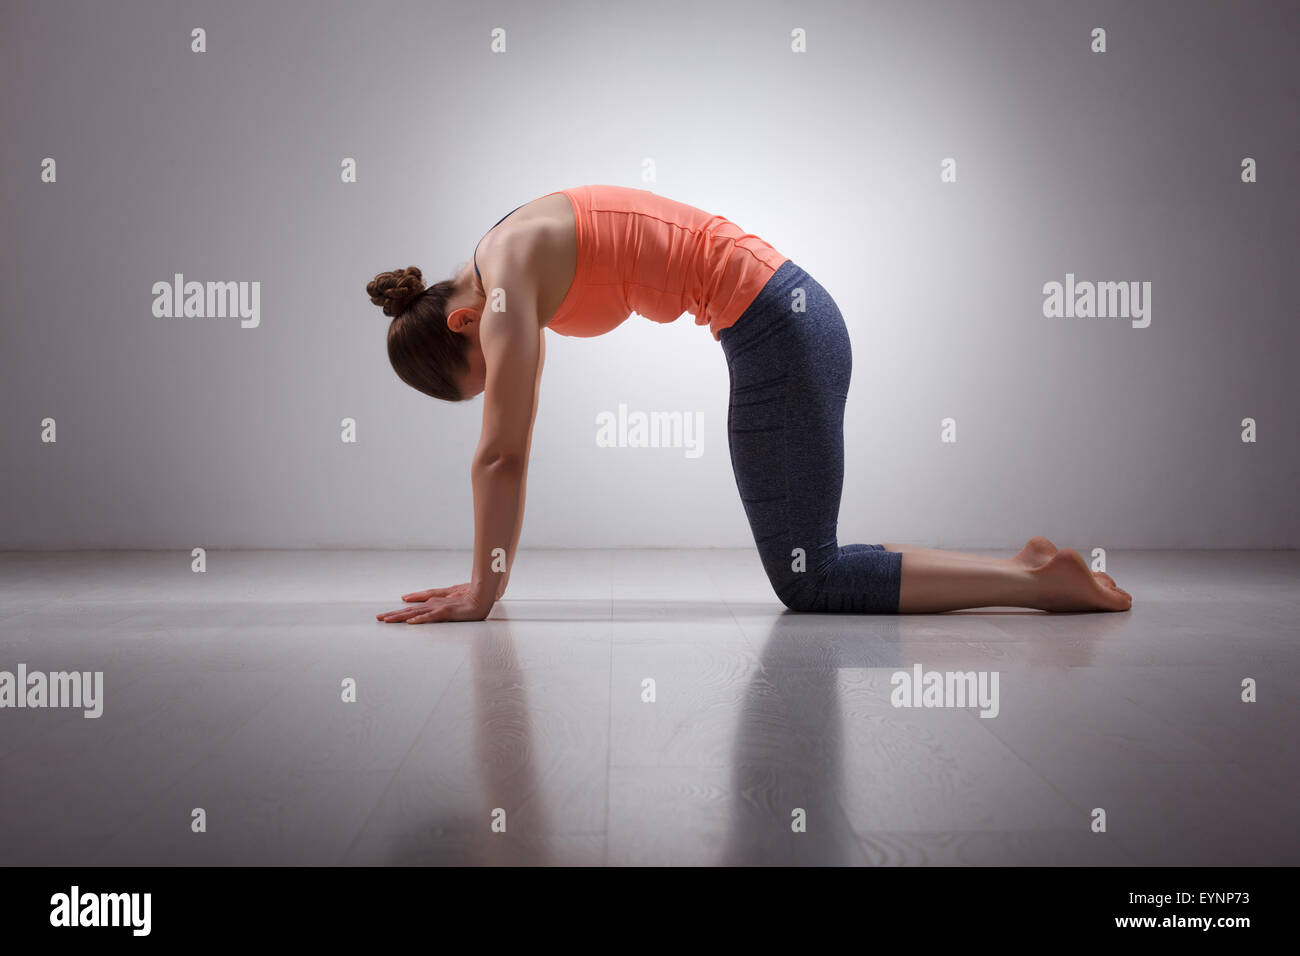 Beautiful sporty fit yogini woman practices yoga asana marjarias - Stock Image